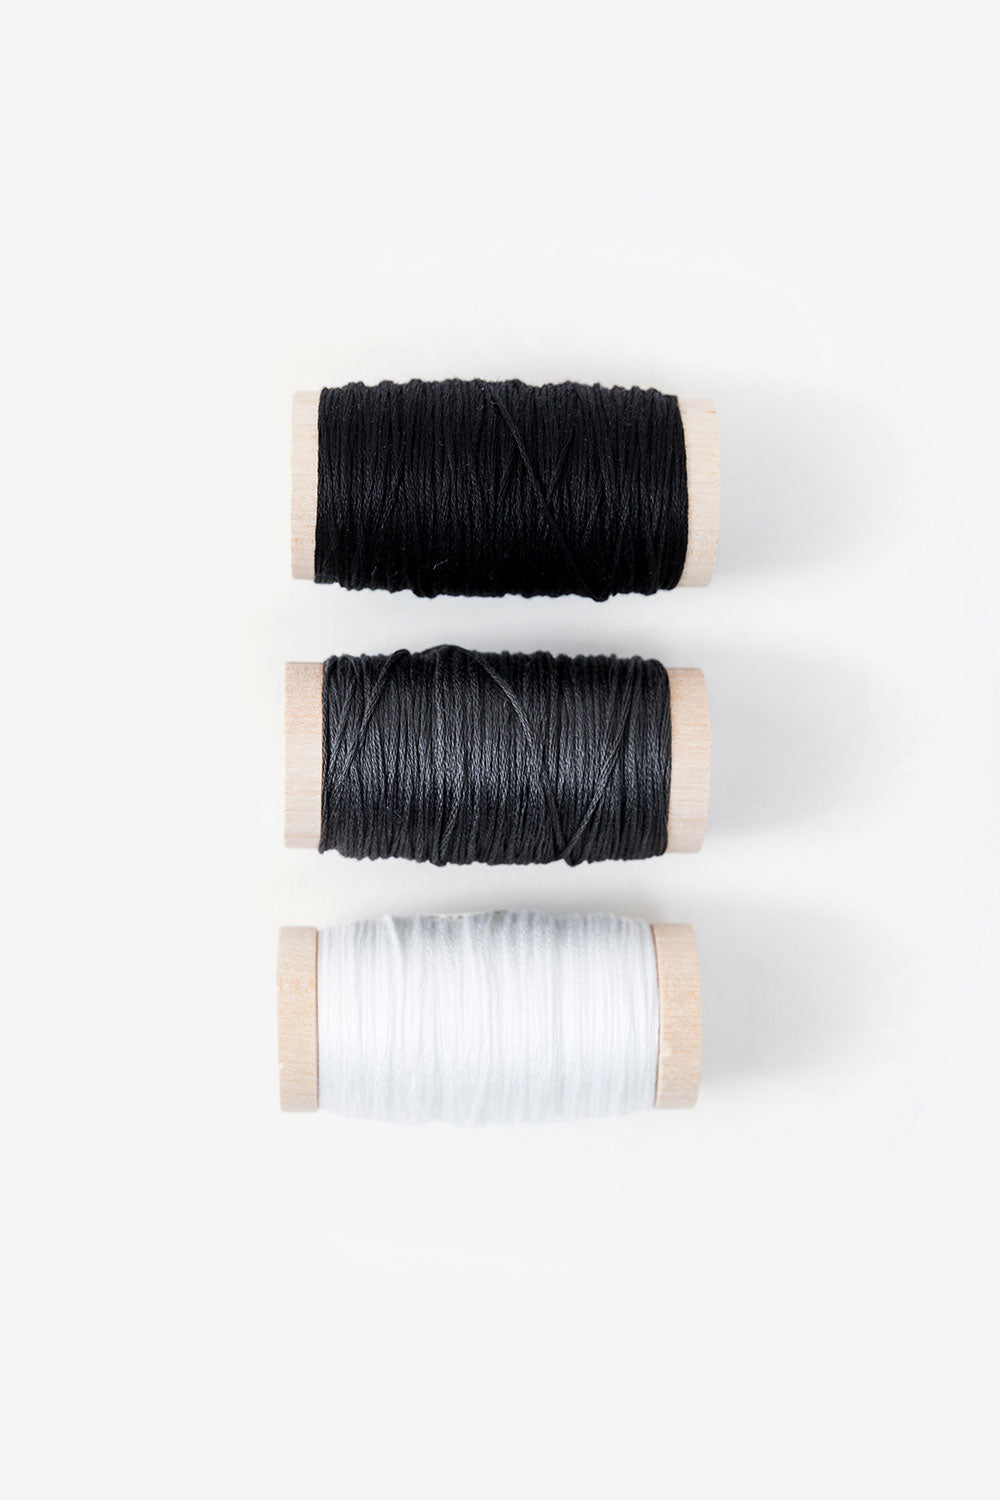 The School of Making Swatch of the Month Organically Dyed Embroidery Floss in Black, Grey and White